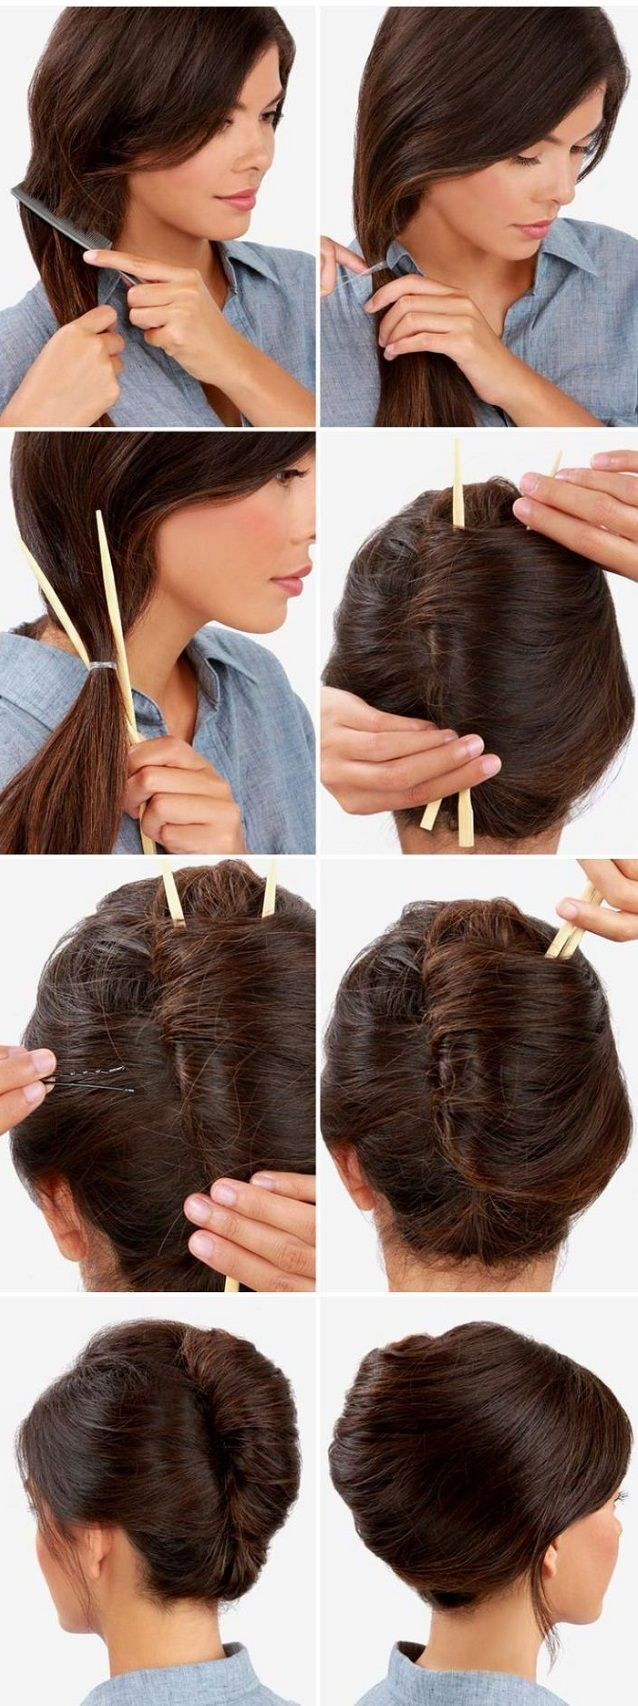 #Hairstyle #Tutorial